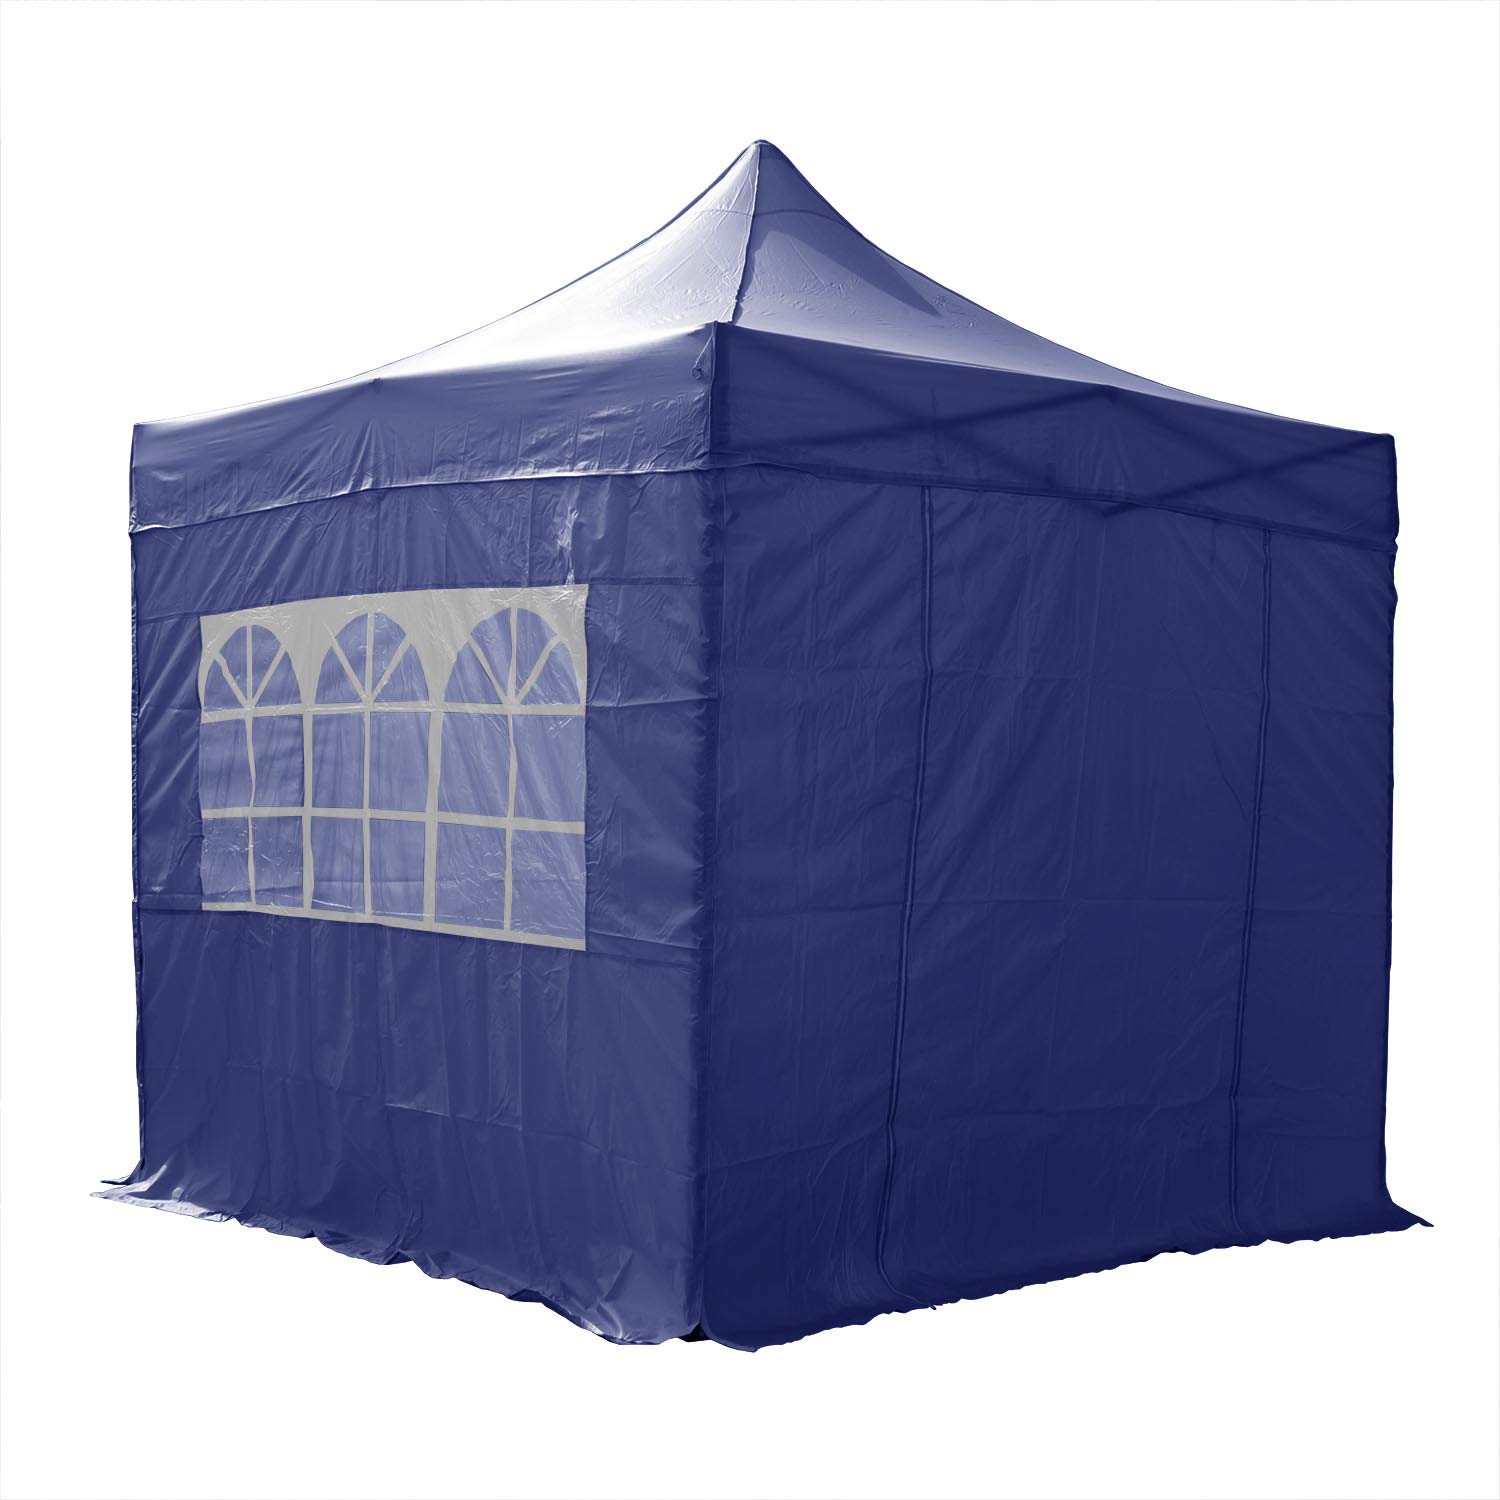 AIRWAVE Pop Up Gazebo 2.5x2.5m Waterproof Outdoor Canopy Marquee Tent for Garden Party (Blue)